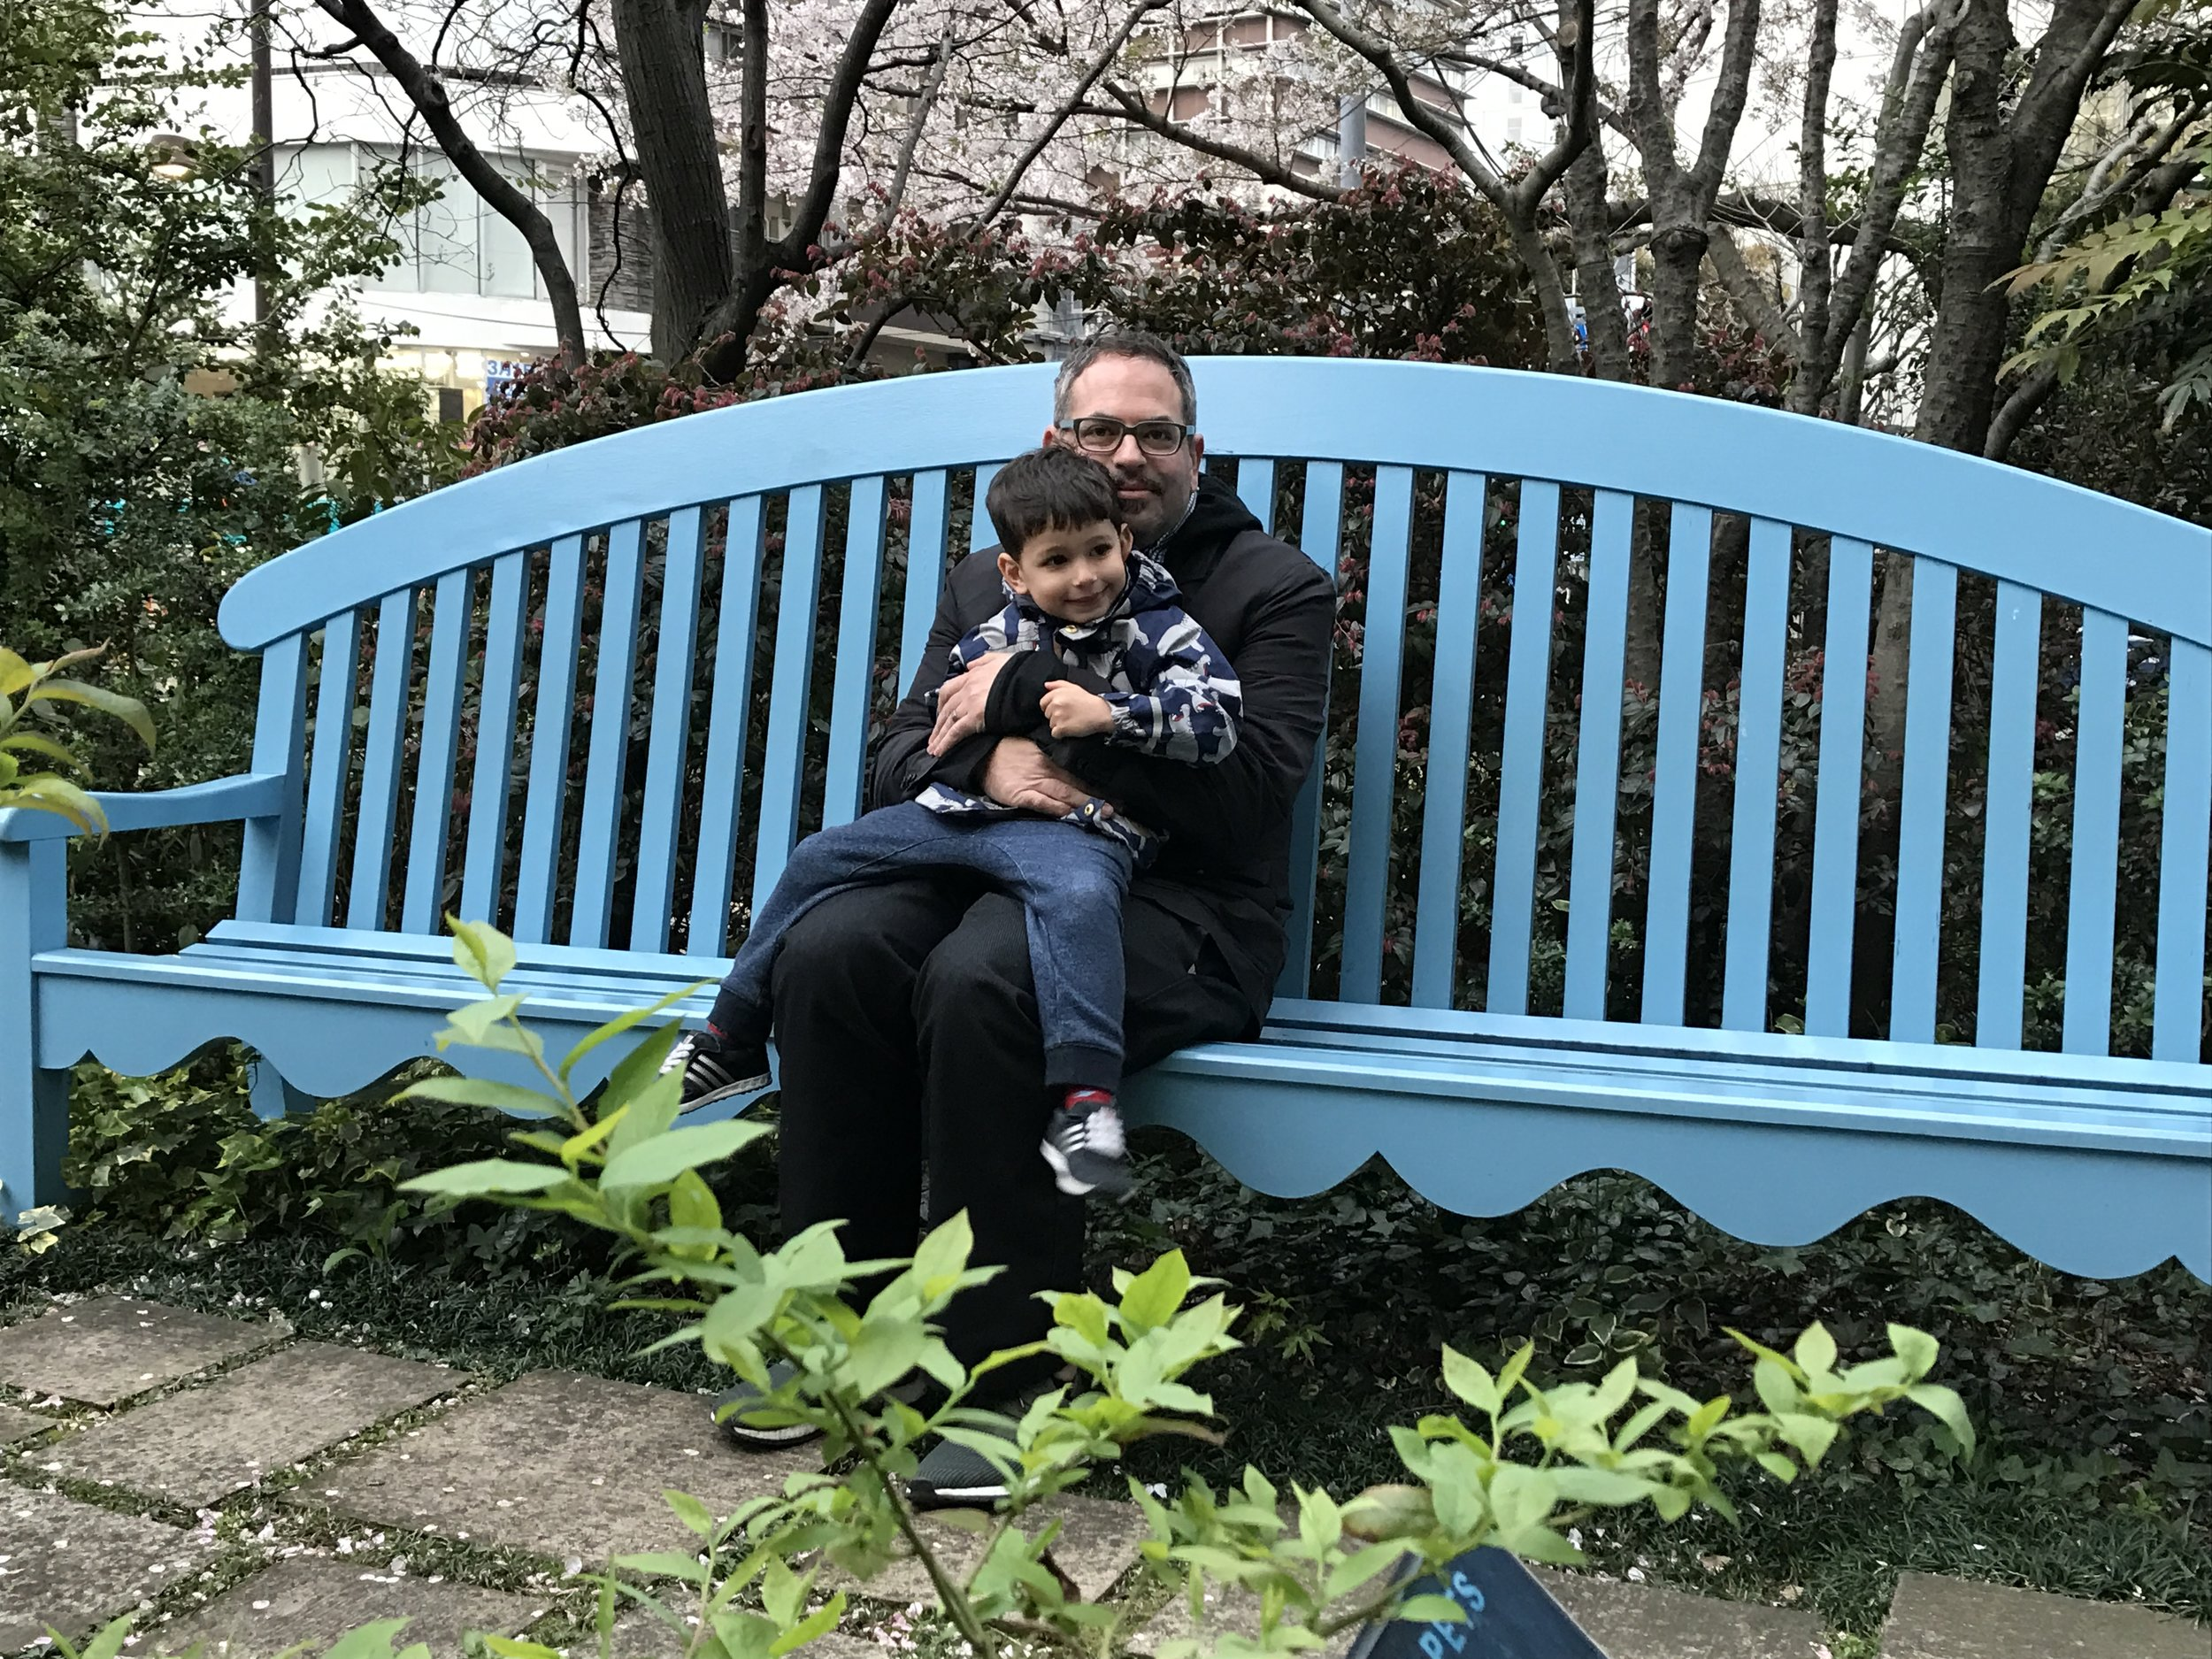 going out after a nap, we find a tiny blue bench